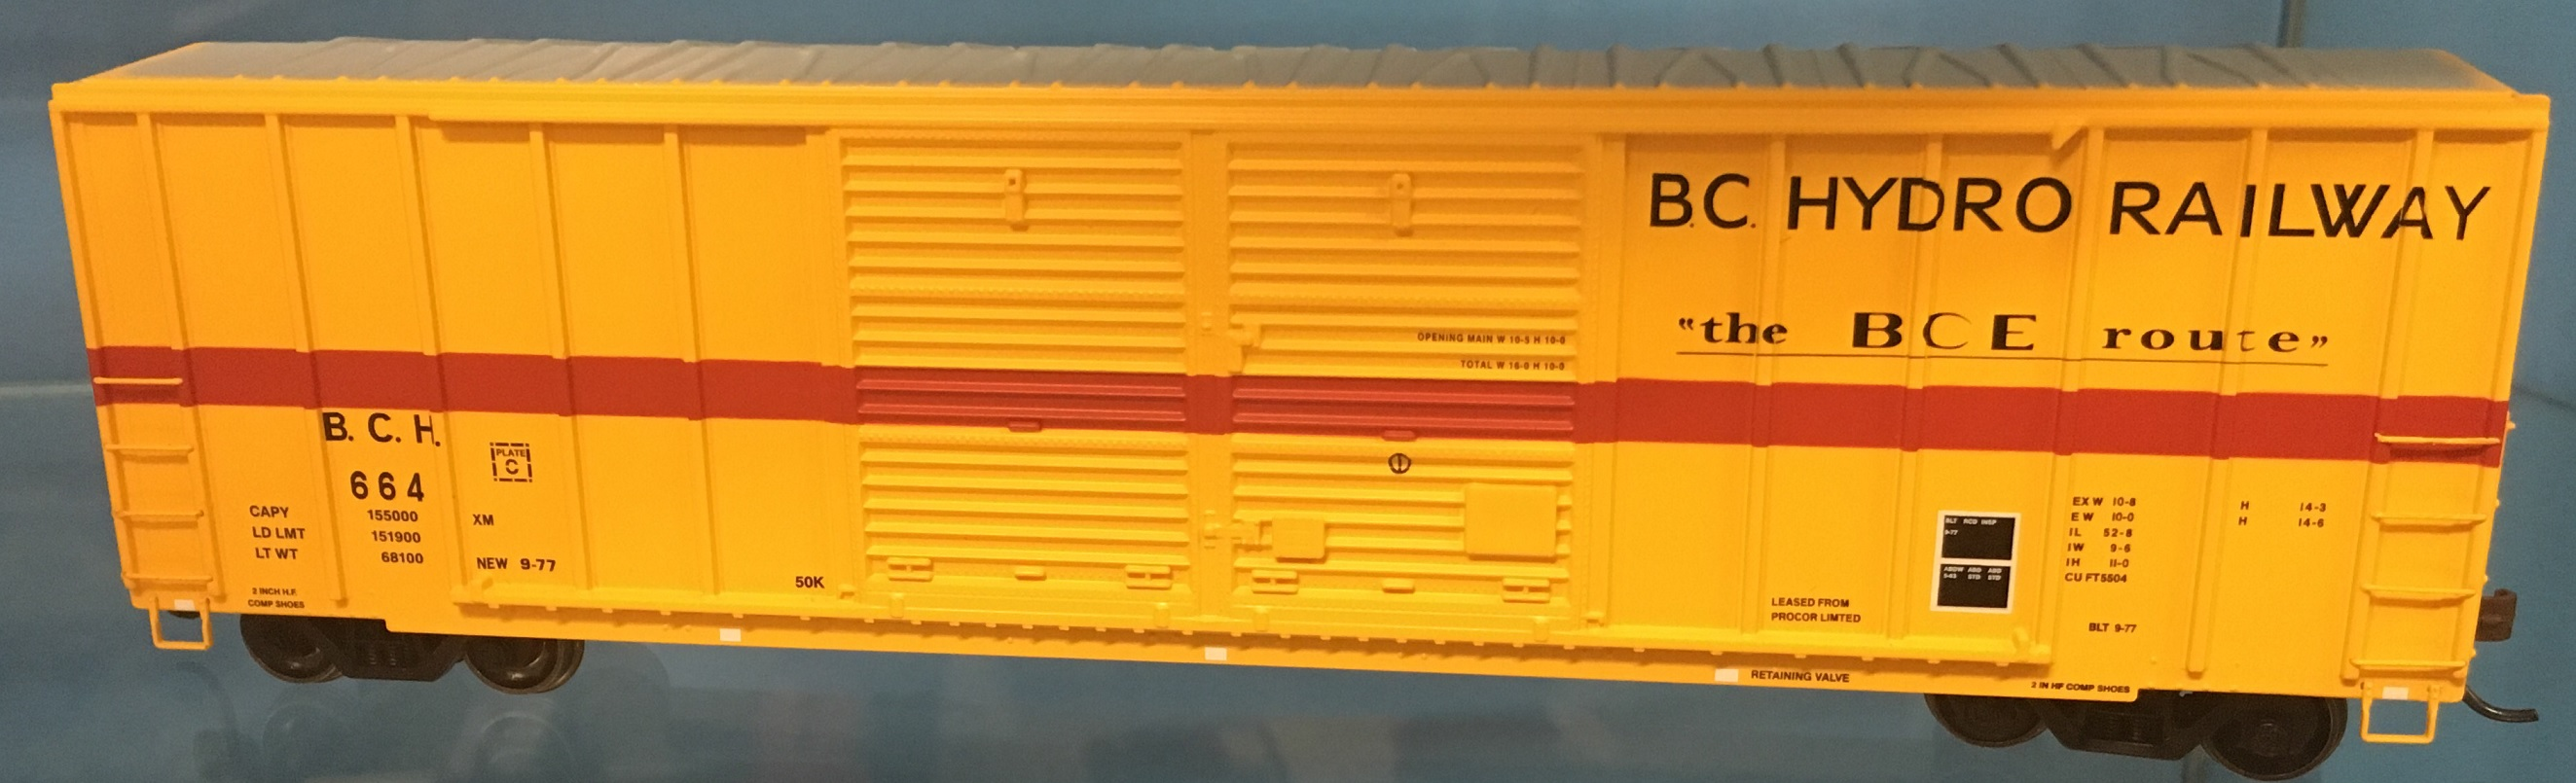 Athearn 27203 HO - 50ft FMC Centered Double Door Box - BC Hydro Railway #664 (#3)